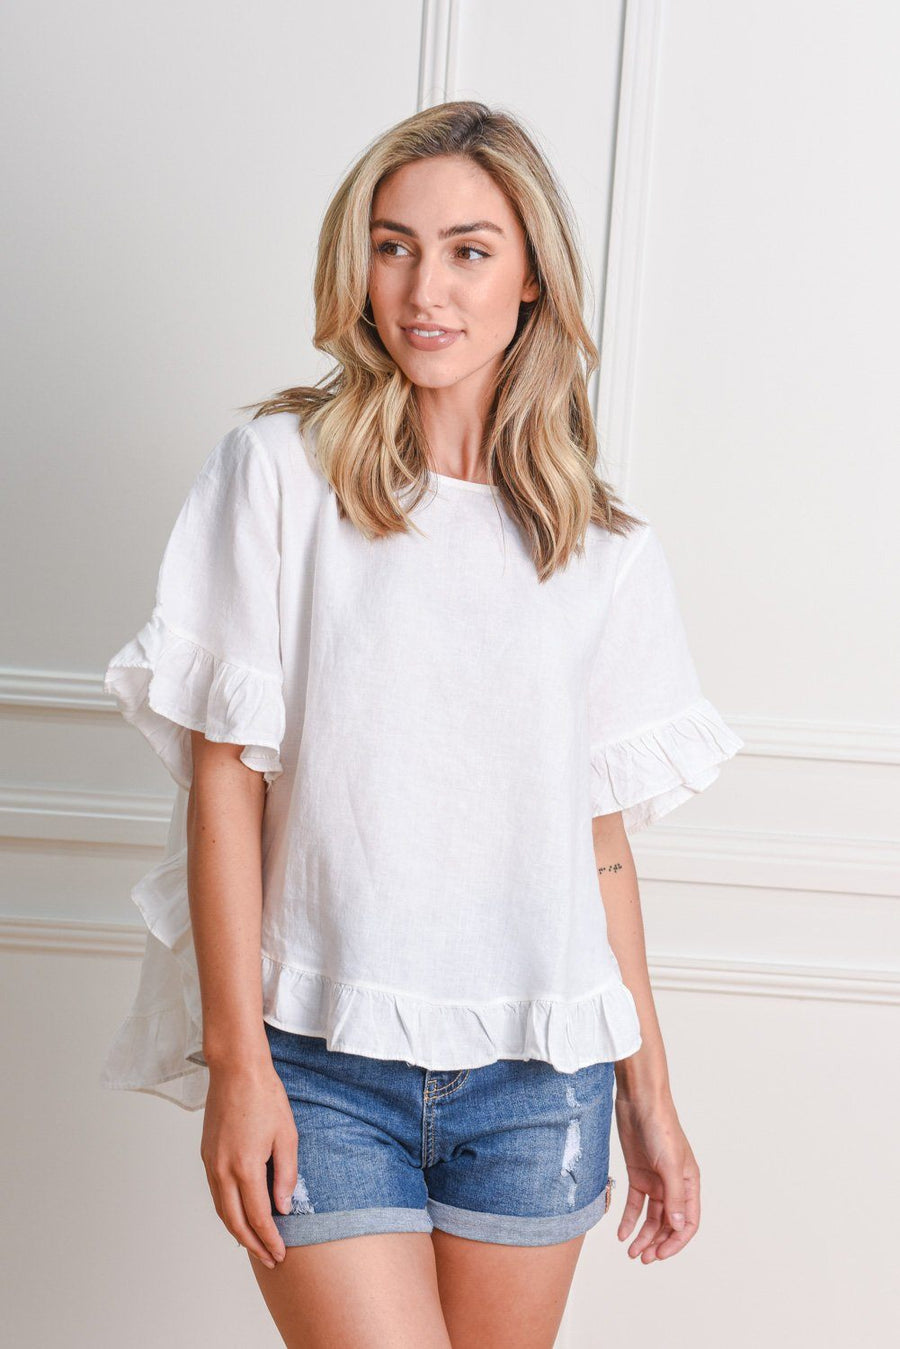 Belle Top | White Top Gray.Label